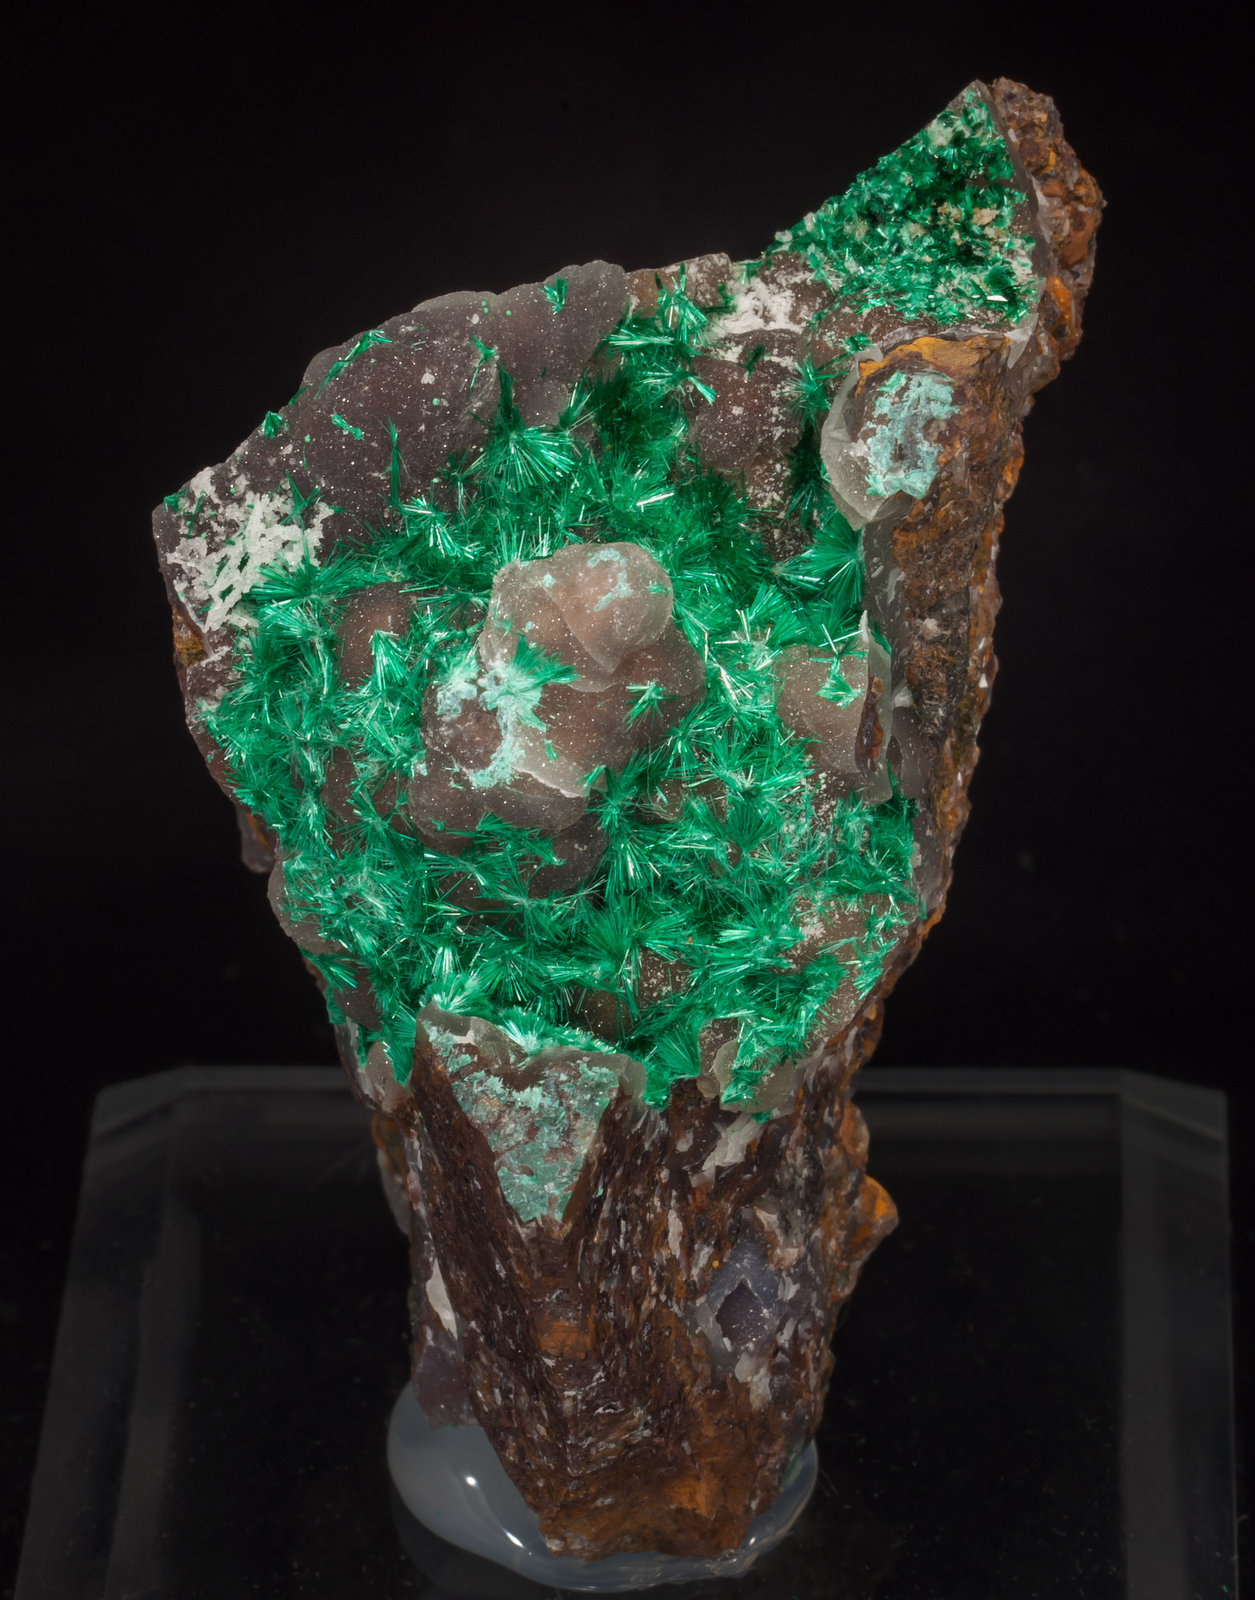 specimens/s_imagesAE7/Brochantite-MX16AE7f.jpg